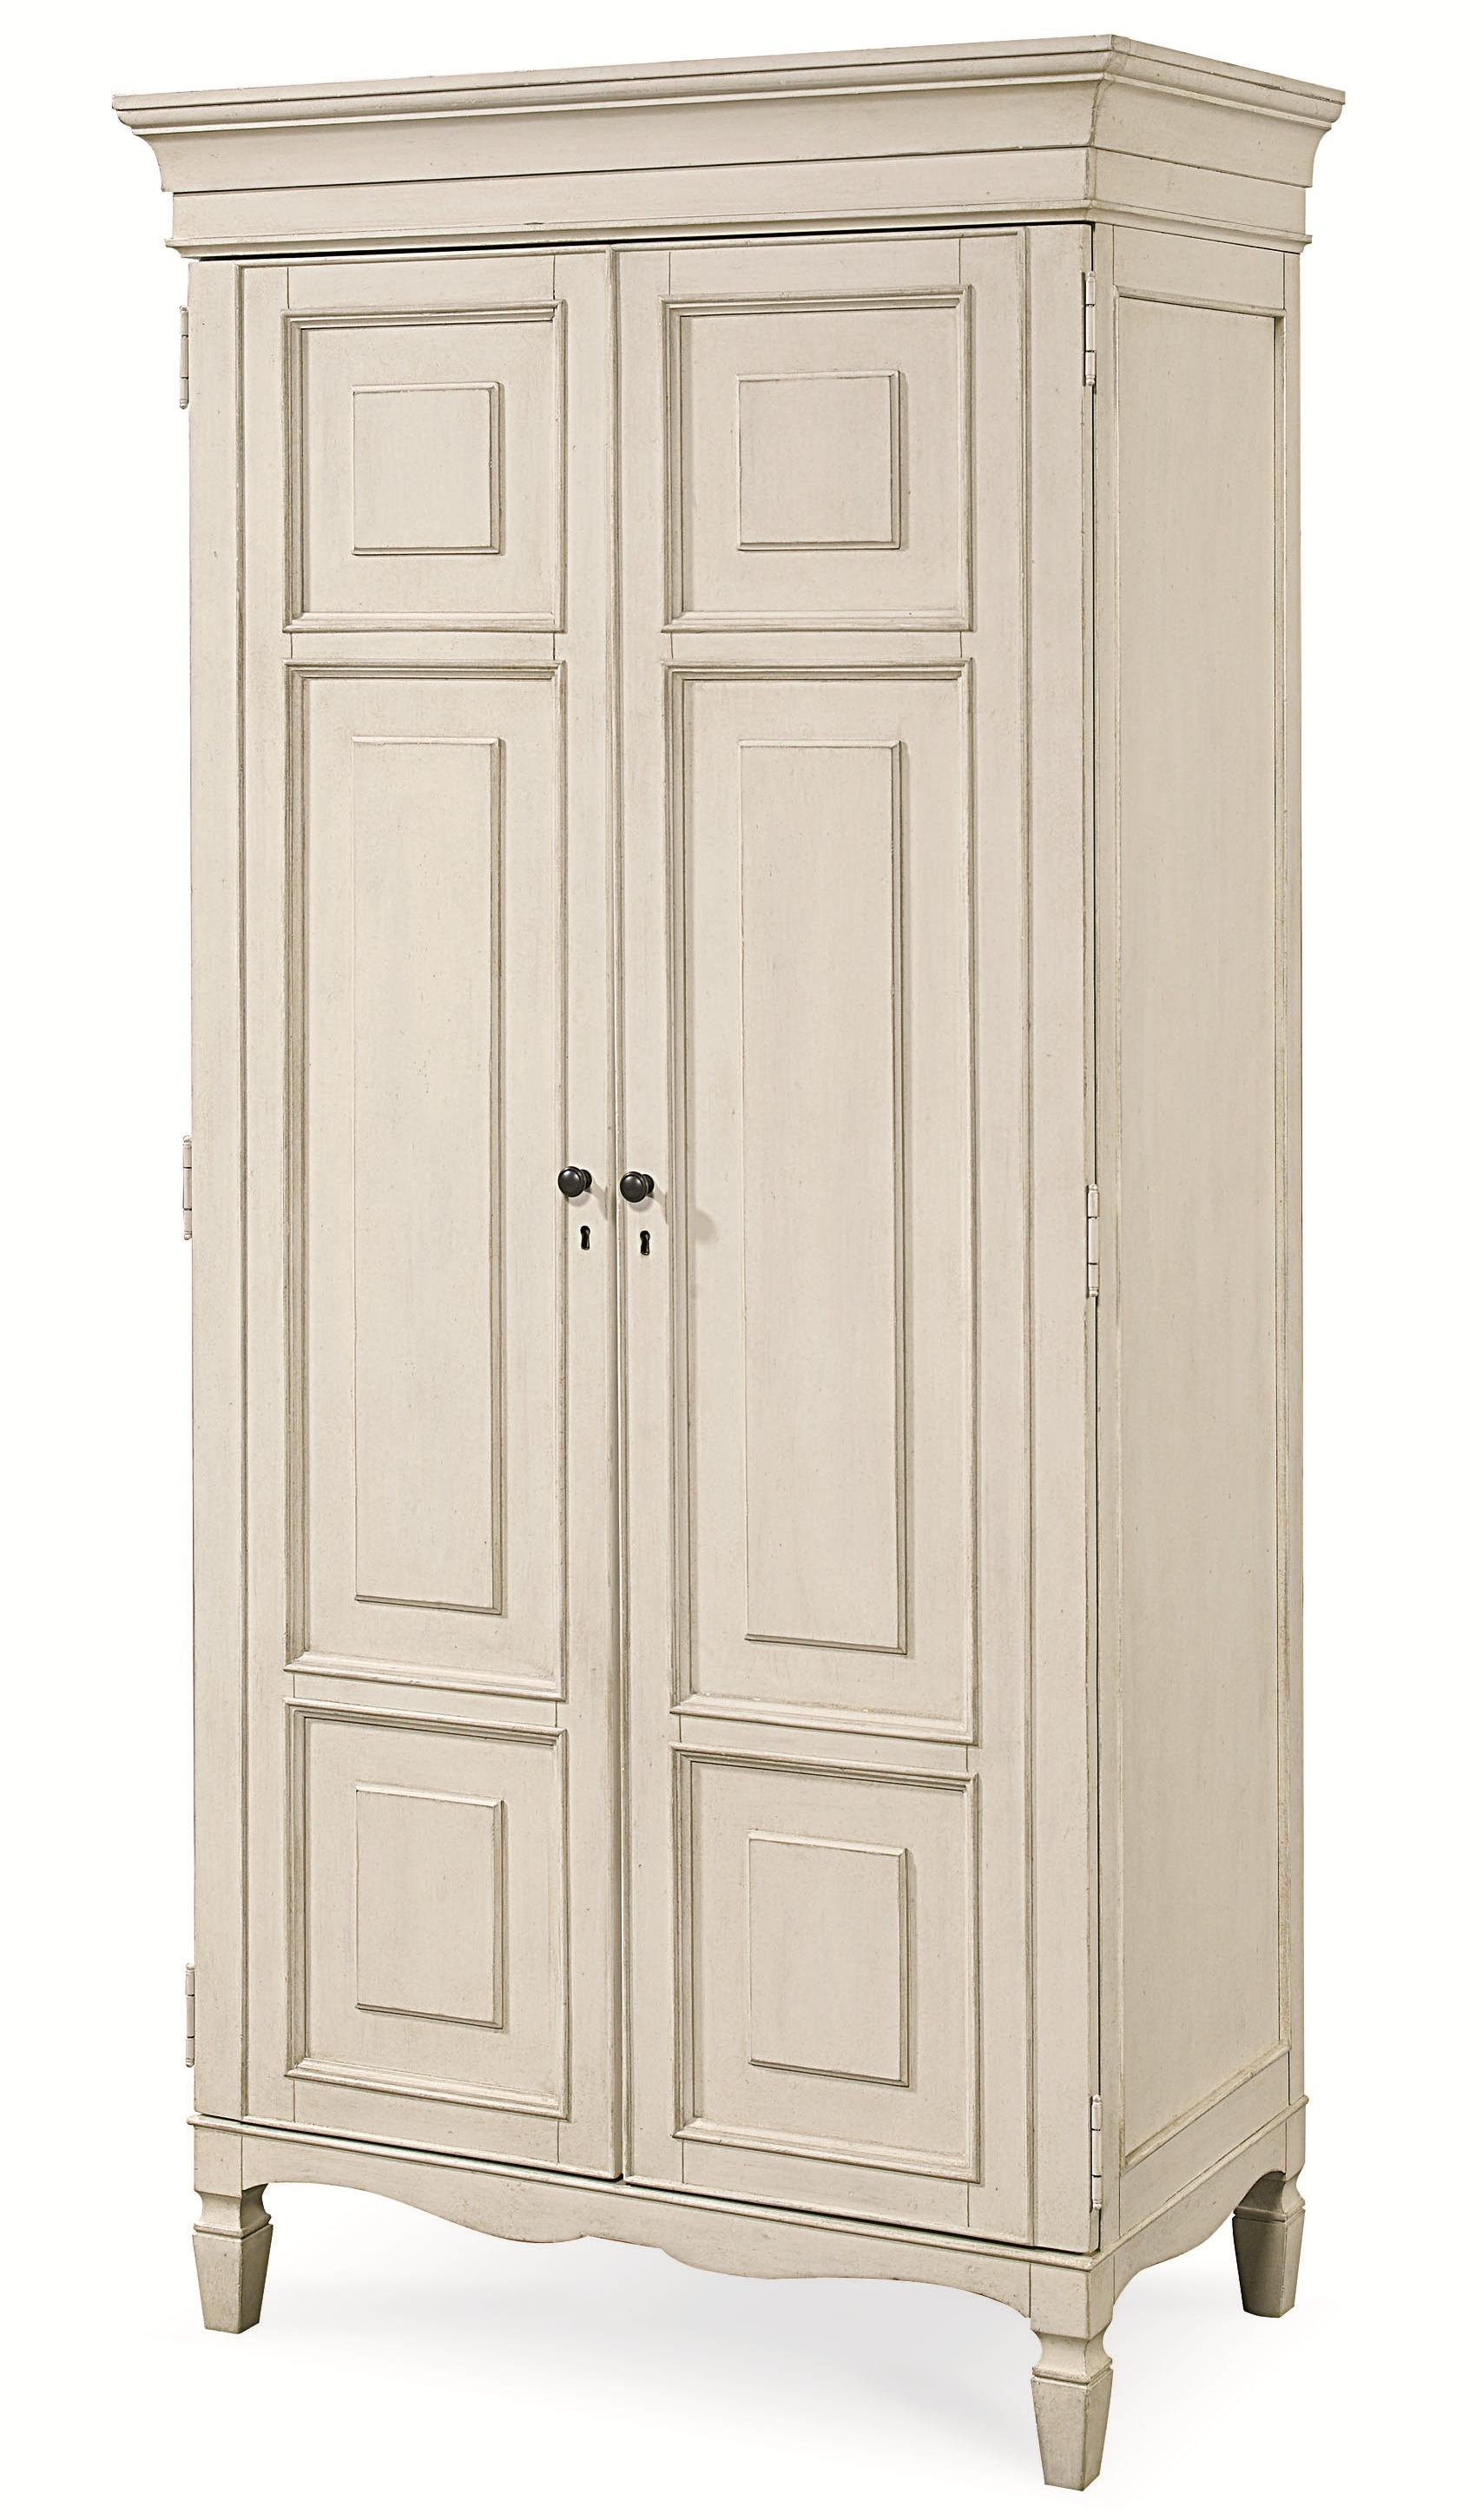 2 Door Tall Cabinet  sc 1 st  Wolf Furniture & 2 Door Tall Cabinet by Universal | Wolf and Gardiner Wolf Furniture